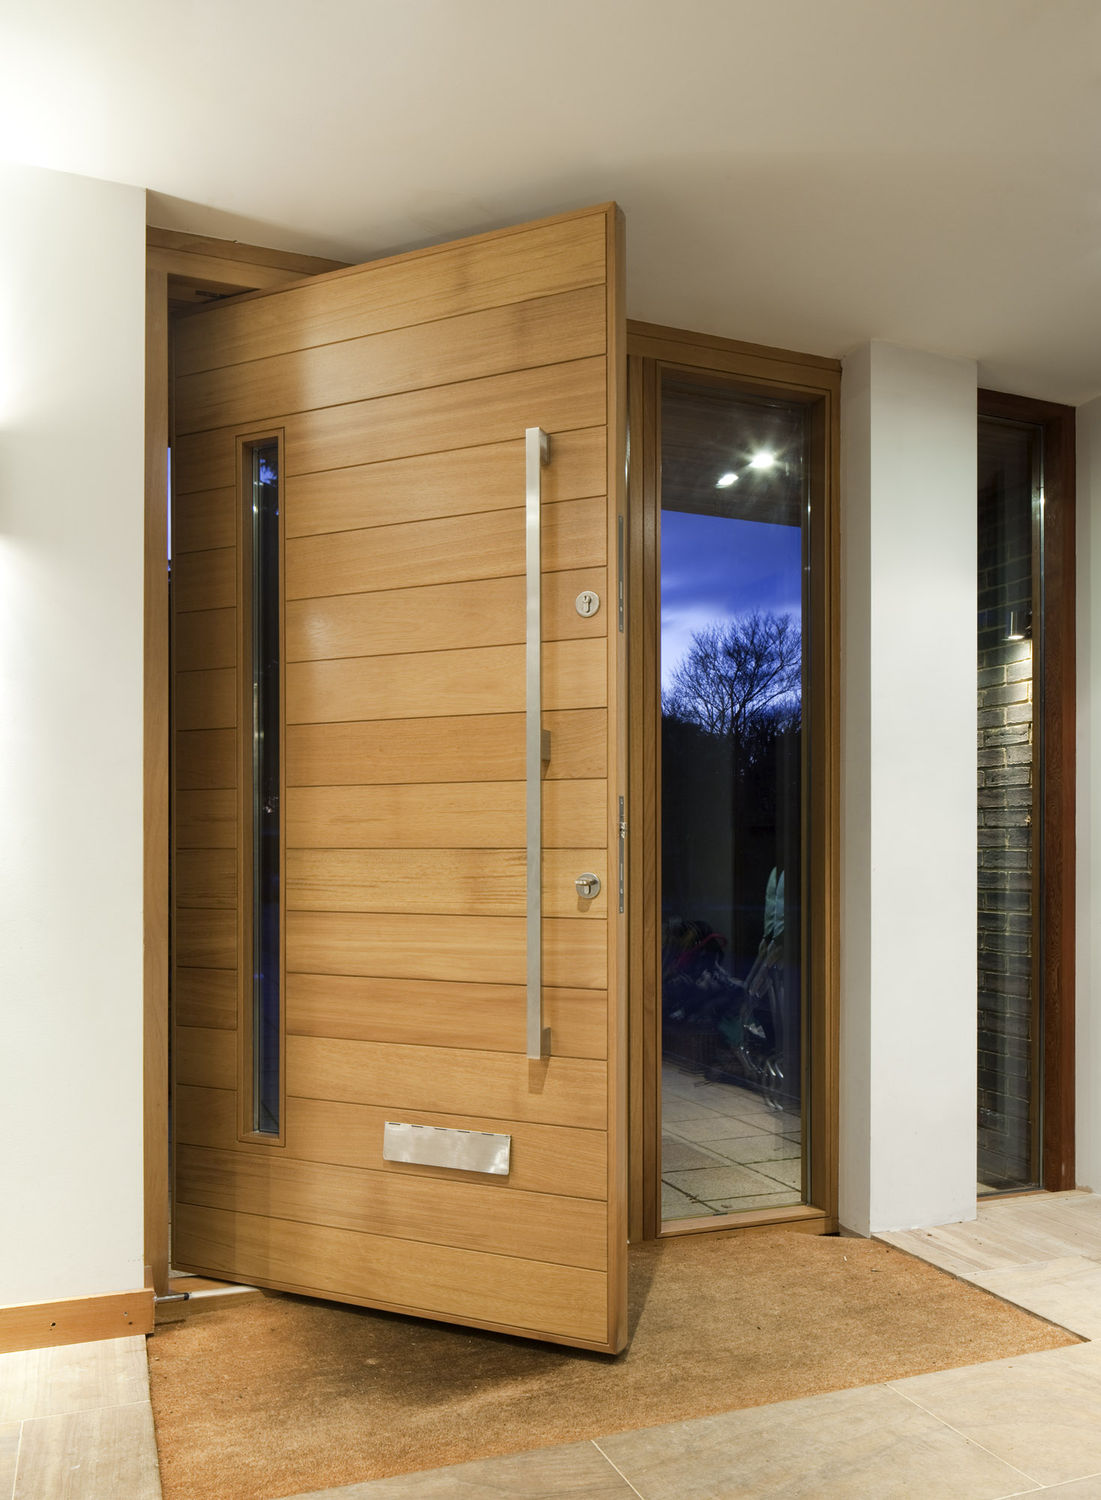 Architectural pivot door contemporary architecture - Pivot de porte ...